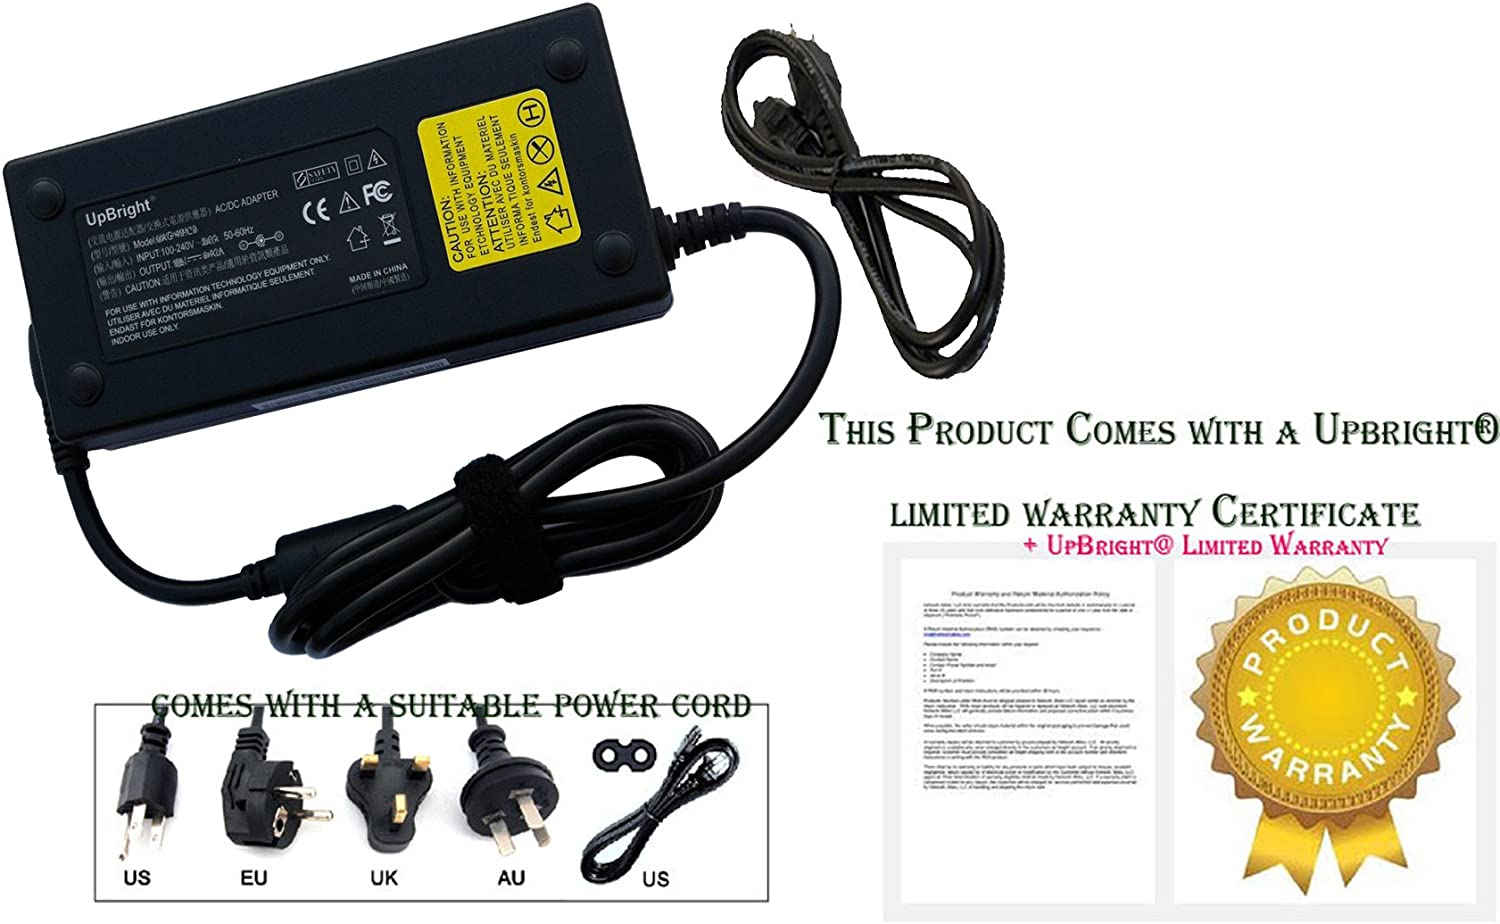 UPBRIGHT New Global AC/DC Adapter for HP F3D46AAR#ABA Pavilion TouchSmart 23-h000 23-h024 F3D46AA F3D46AA#ABA All-in-One Computer Desktop PC Power Supply Cord Battery Charger PSU